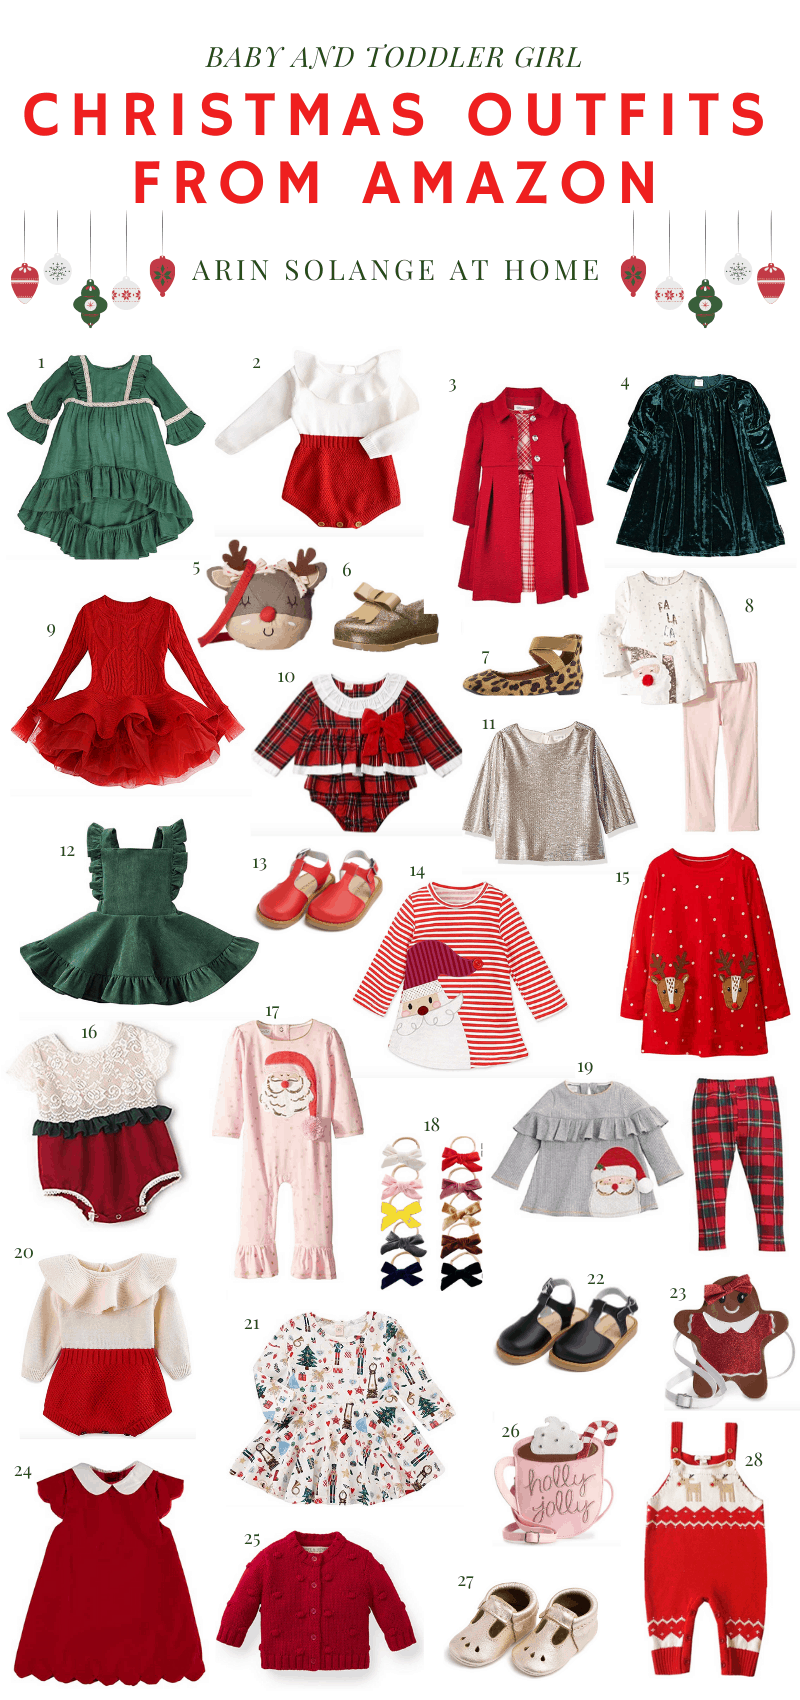 Christmas outfits for girls from Amazon